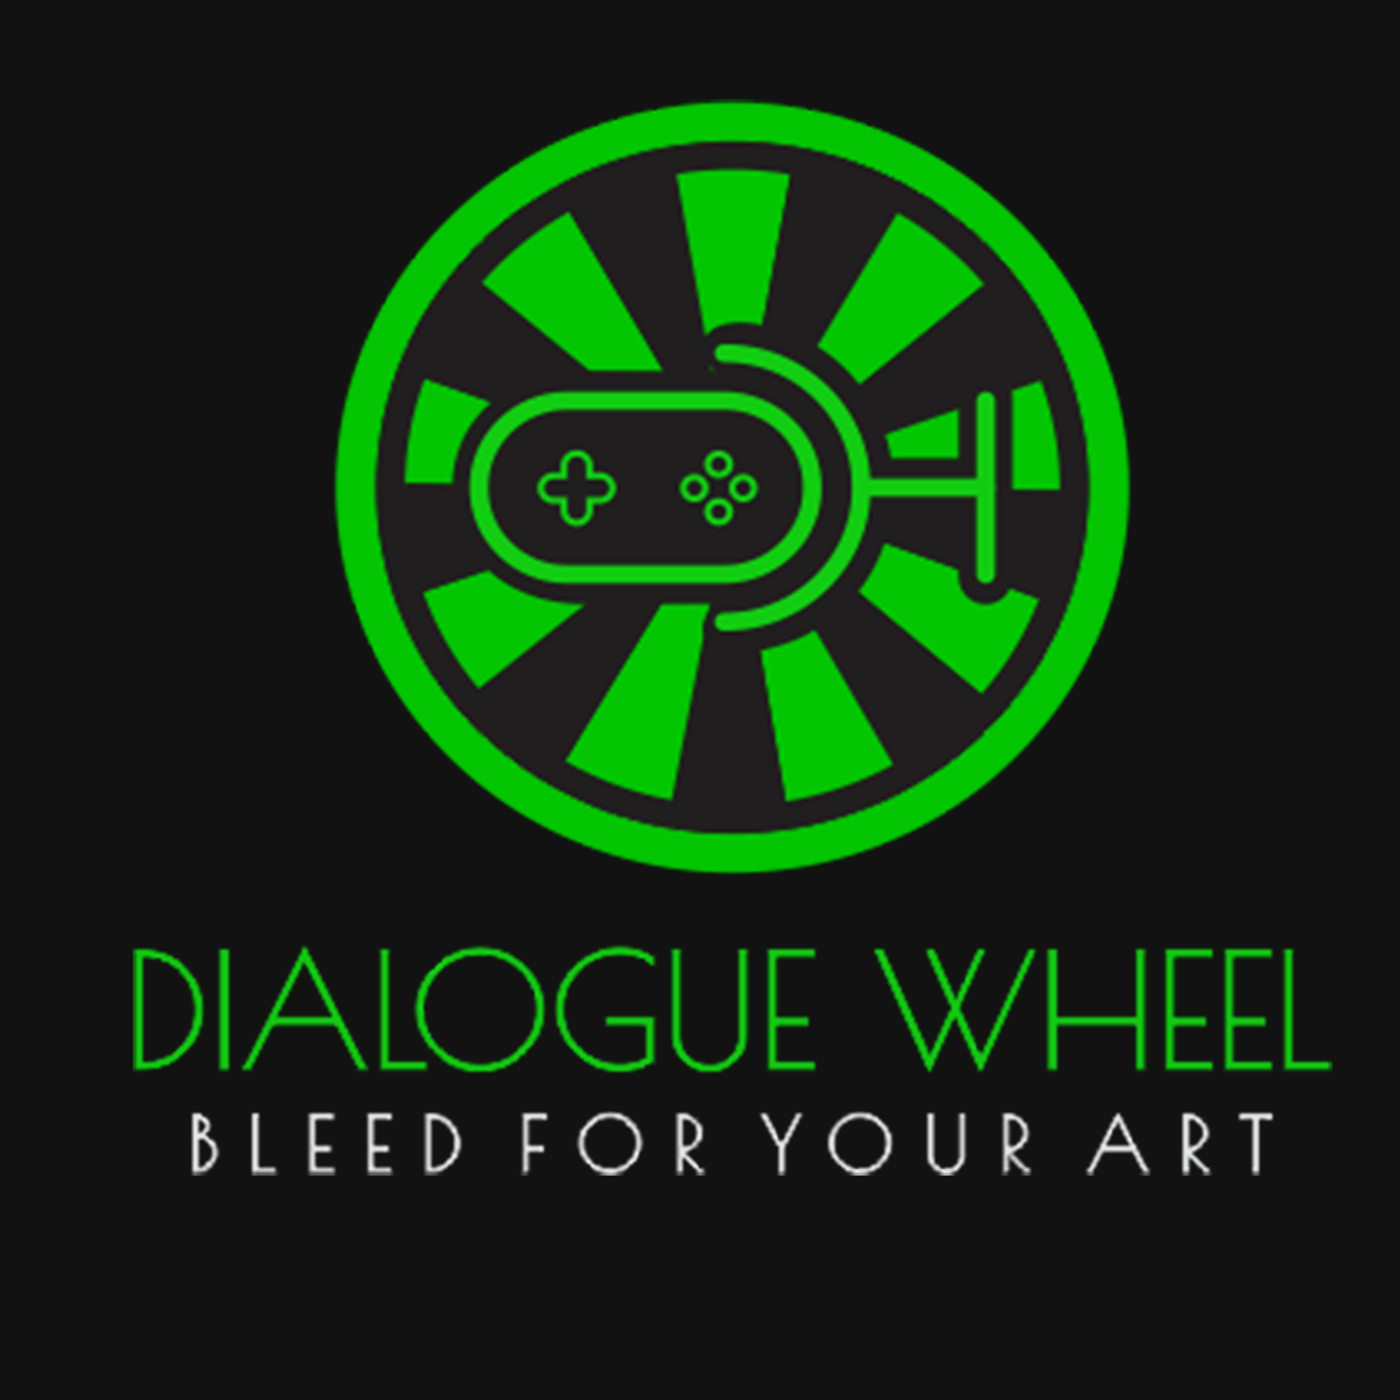 Dialogue Wheel